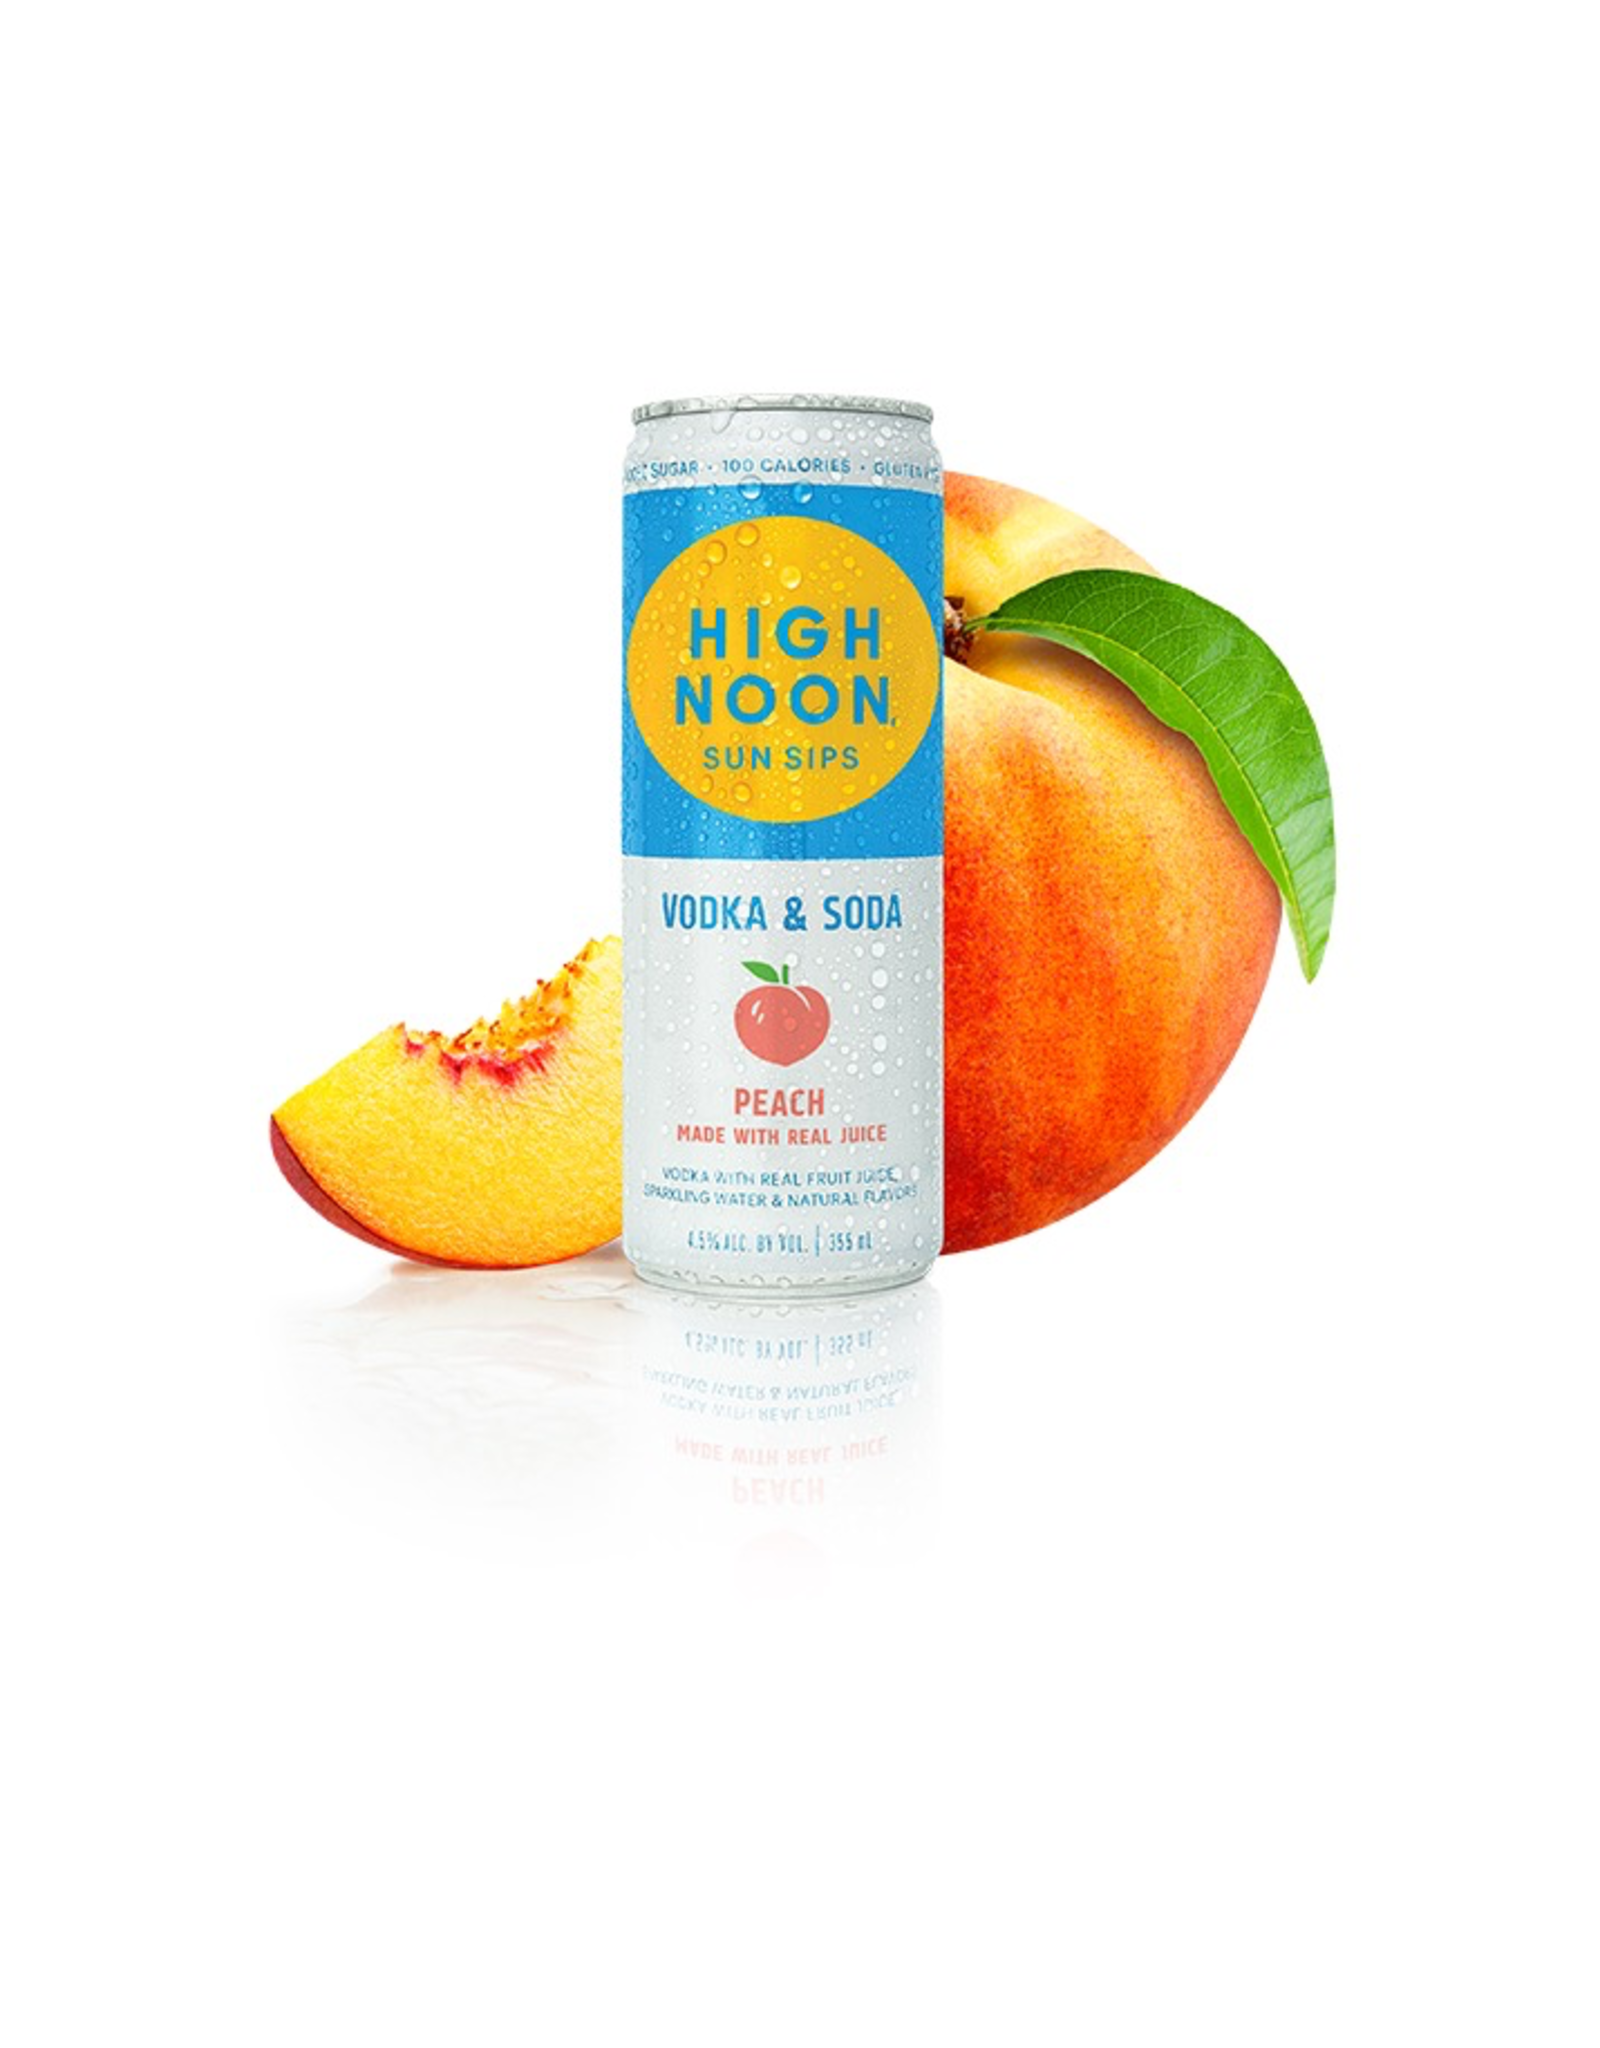 Alcoholic Specialty Drink High Noon Sun Sips, Peach Vodka & Soda (355ml)